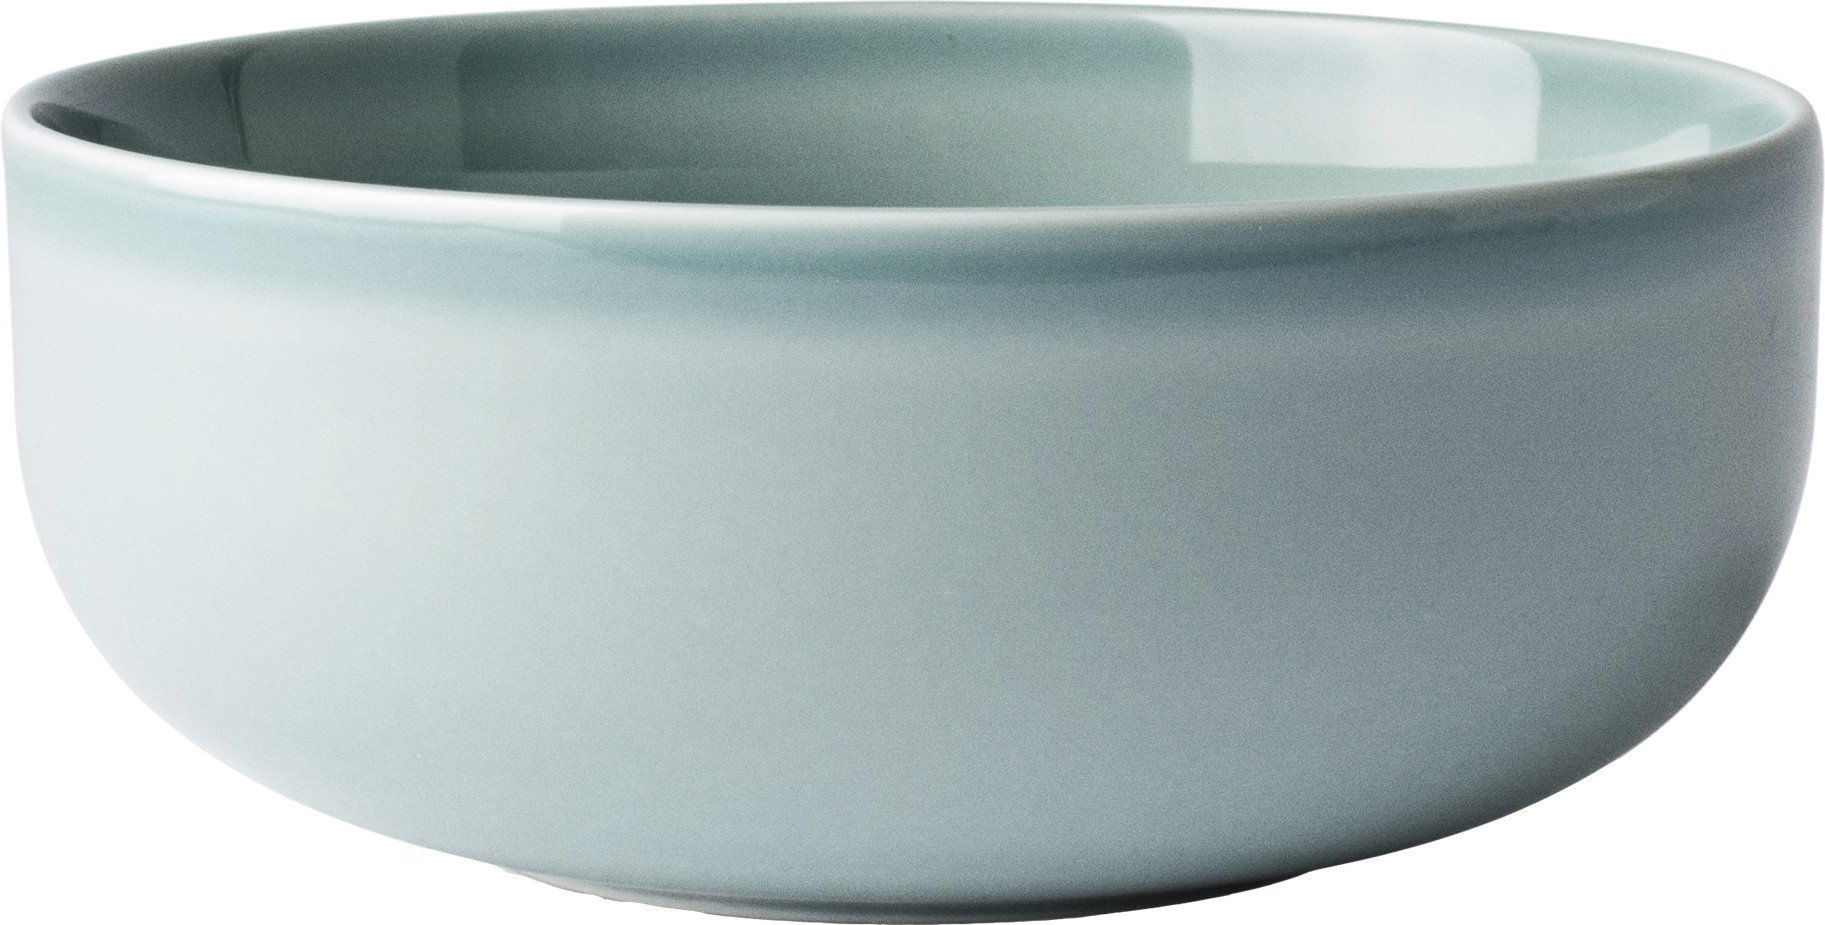 New Norm Bowl Cool Green Ø 17,5cm by Norm Architects, Menu